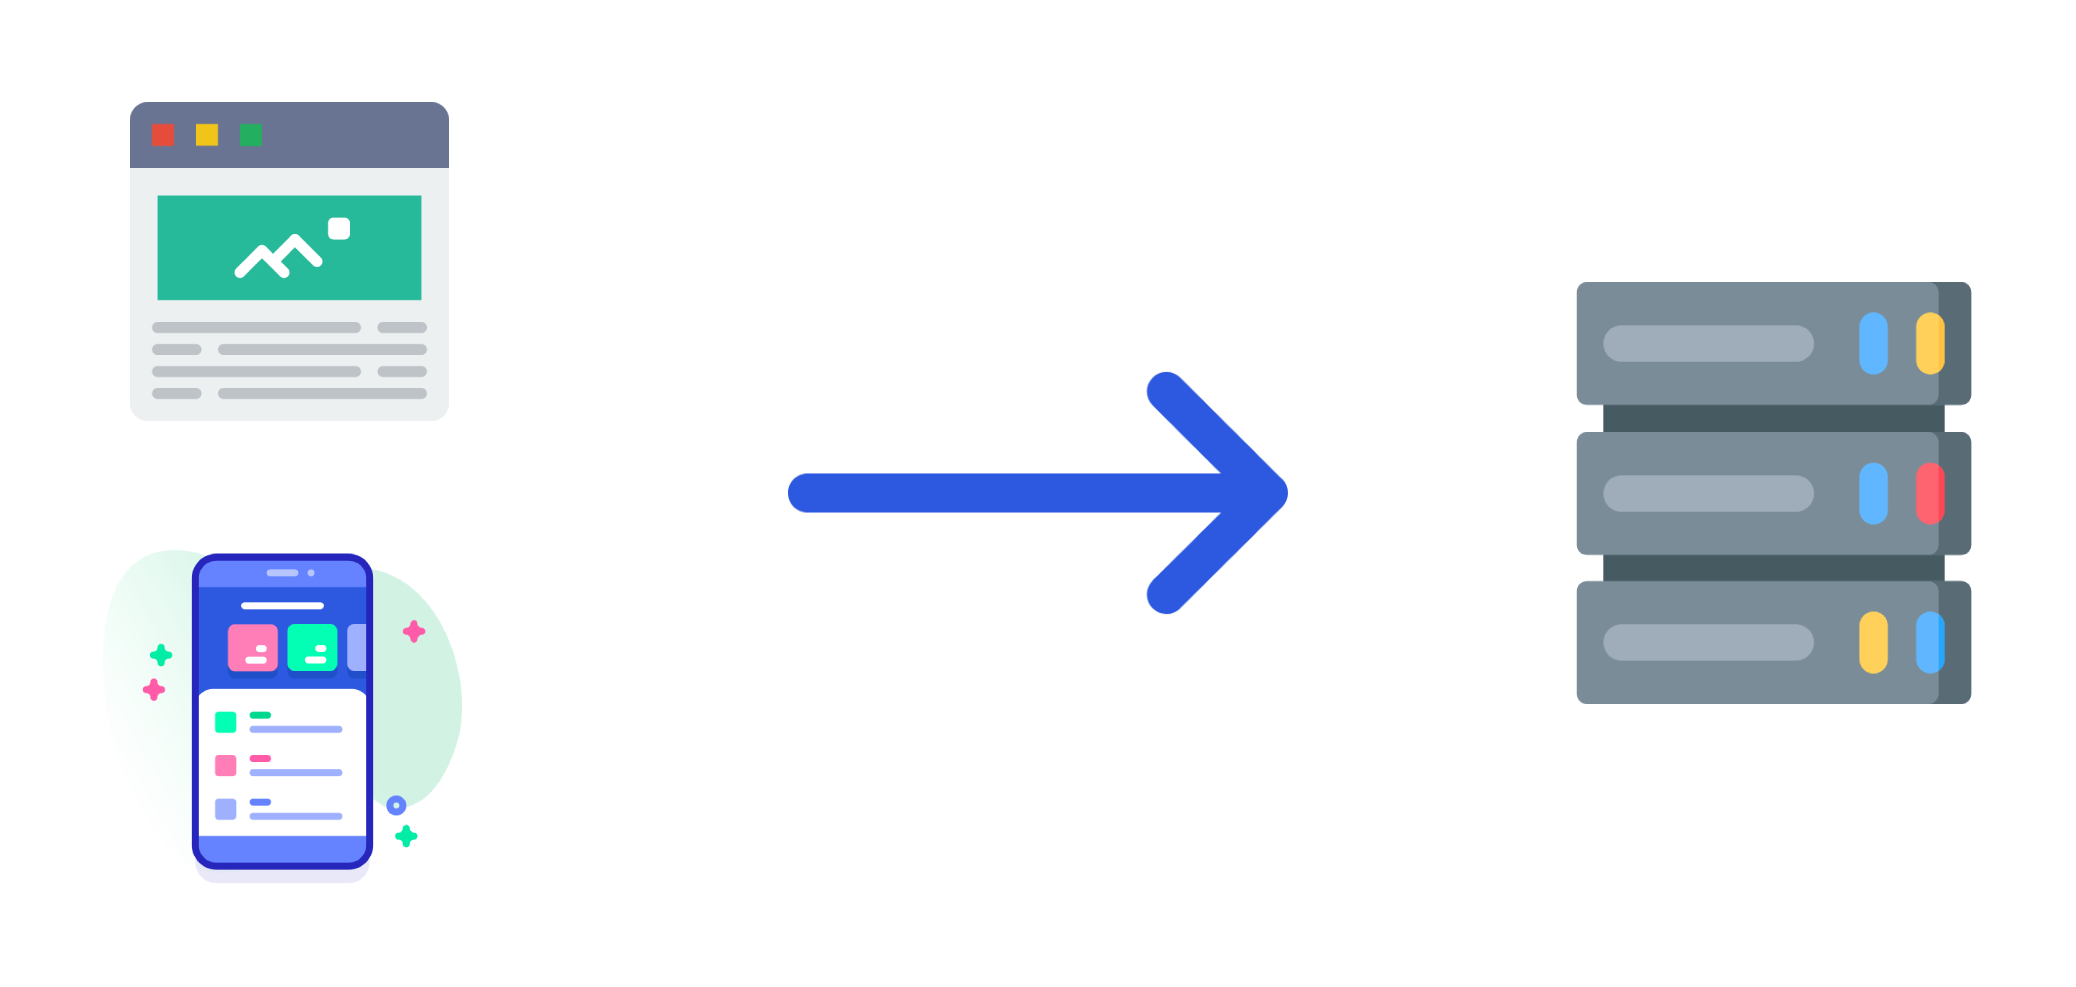 Trigger STATEWIZE flows directly from your existing backend or frontend application